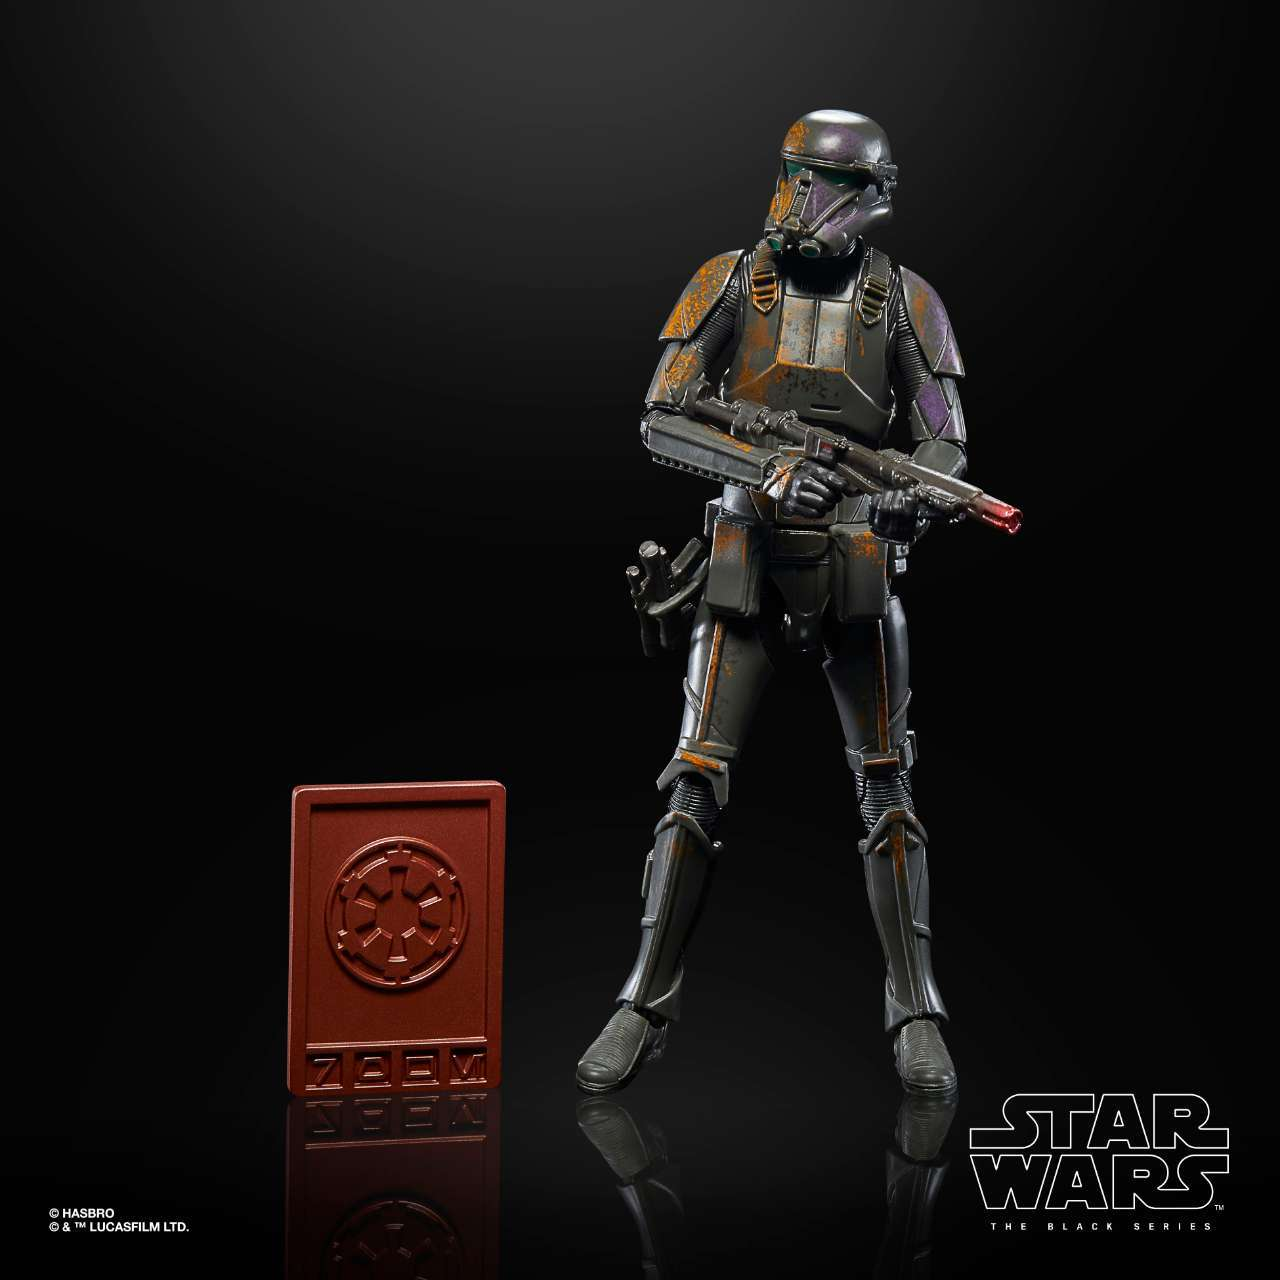 STAR WARS THE BLACK SERIES CREDIT COLLECTION 6-INCH DEATH TROOPER Figure - oop 2